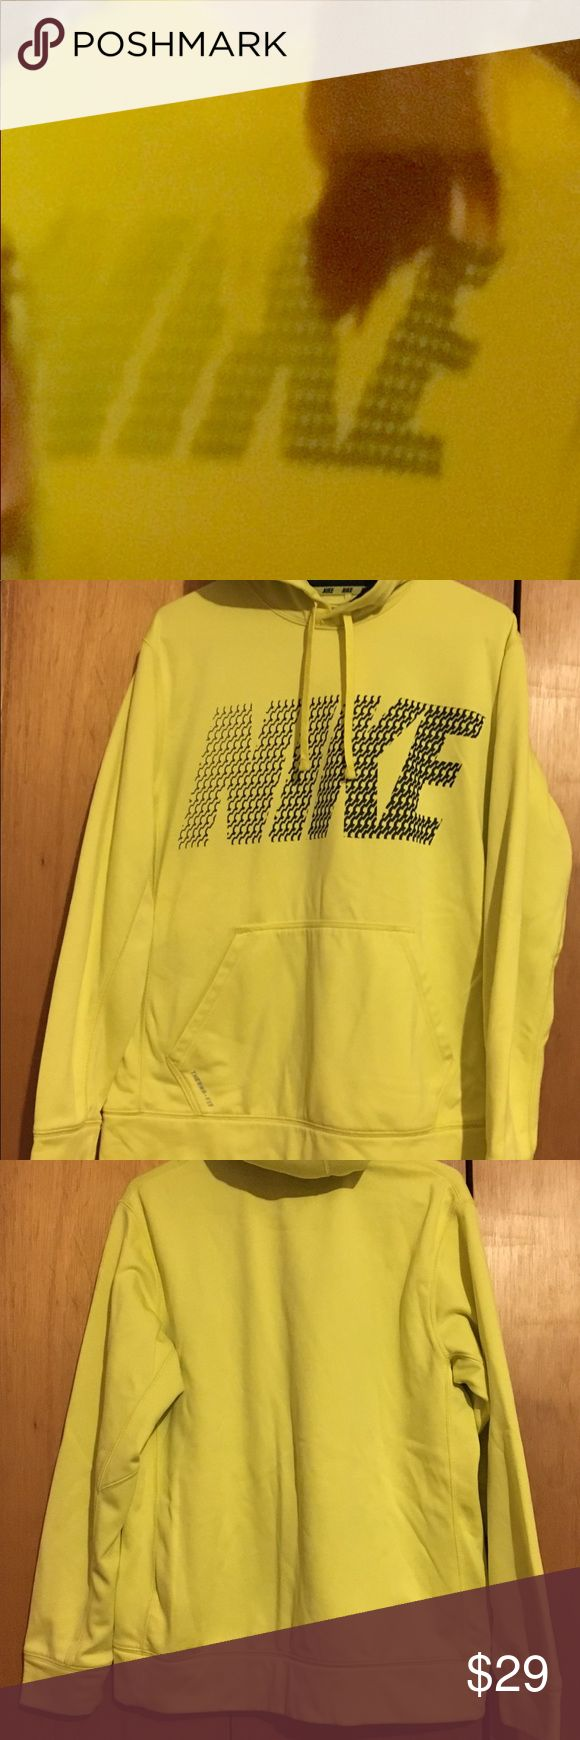 Women's Nike Neon Yellow Wordmark Hoodie Women's Nike Neon Yellow Wordmark Hoodie Therma-Fit Made in Vietnam Size: Medium, Large Fit RN#56323 CA#95553 Body: 100% Polyester Hood Fleece Lining: 100% Polyester Exclusive of Decoration Machine Wash Cold Wash With Like Colors Do Not Use Softeners Remove Immediately Do Not Allow to Lay on Itself When Wet Do Not Bleach Tumble Dry Low Do Not Iron Do Not Dry Clean Nike Tops Sweatshirts & Hoodies